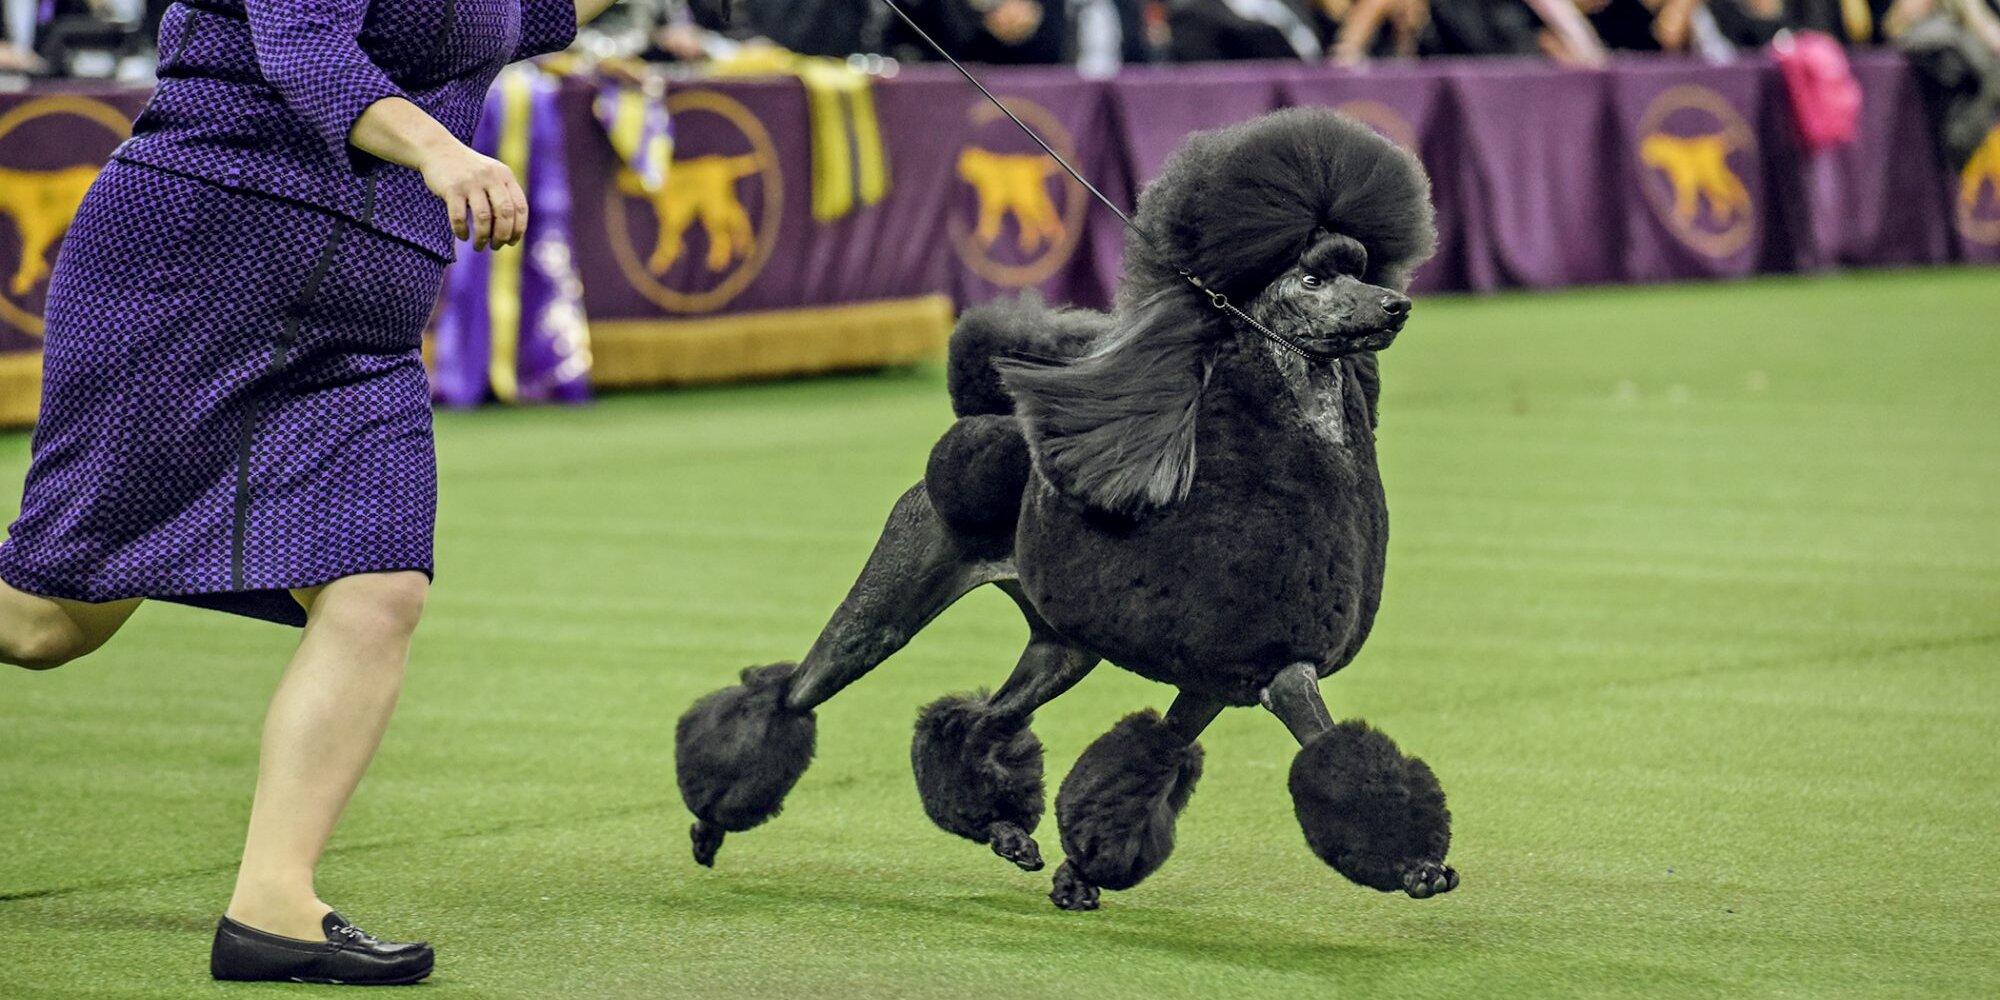 How to Watch the Westminster Dog Show